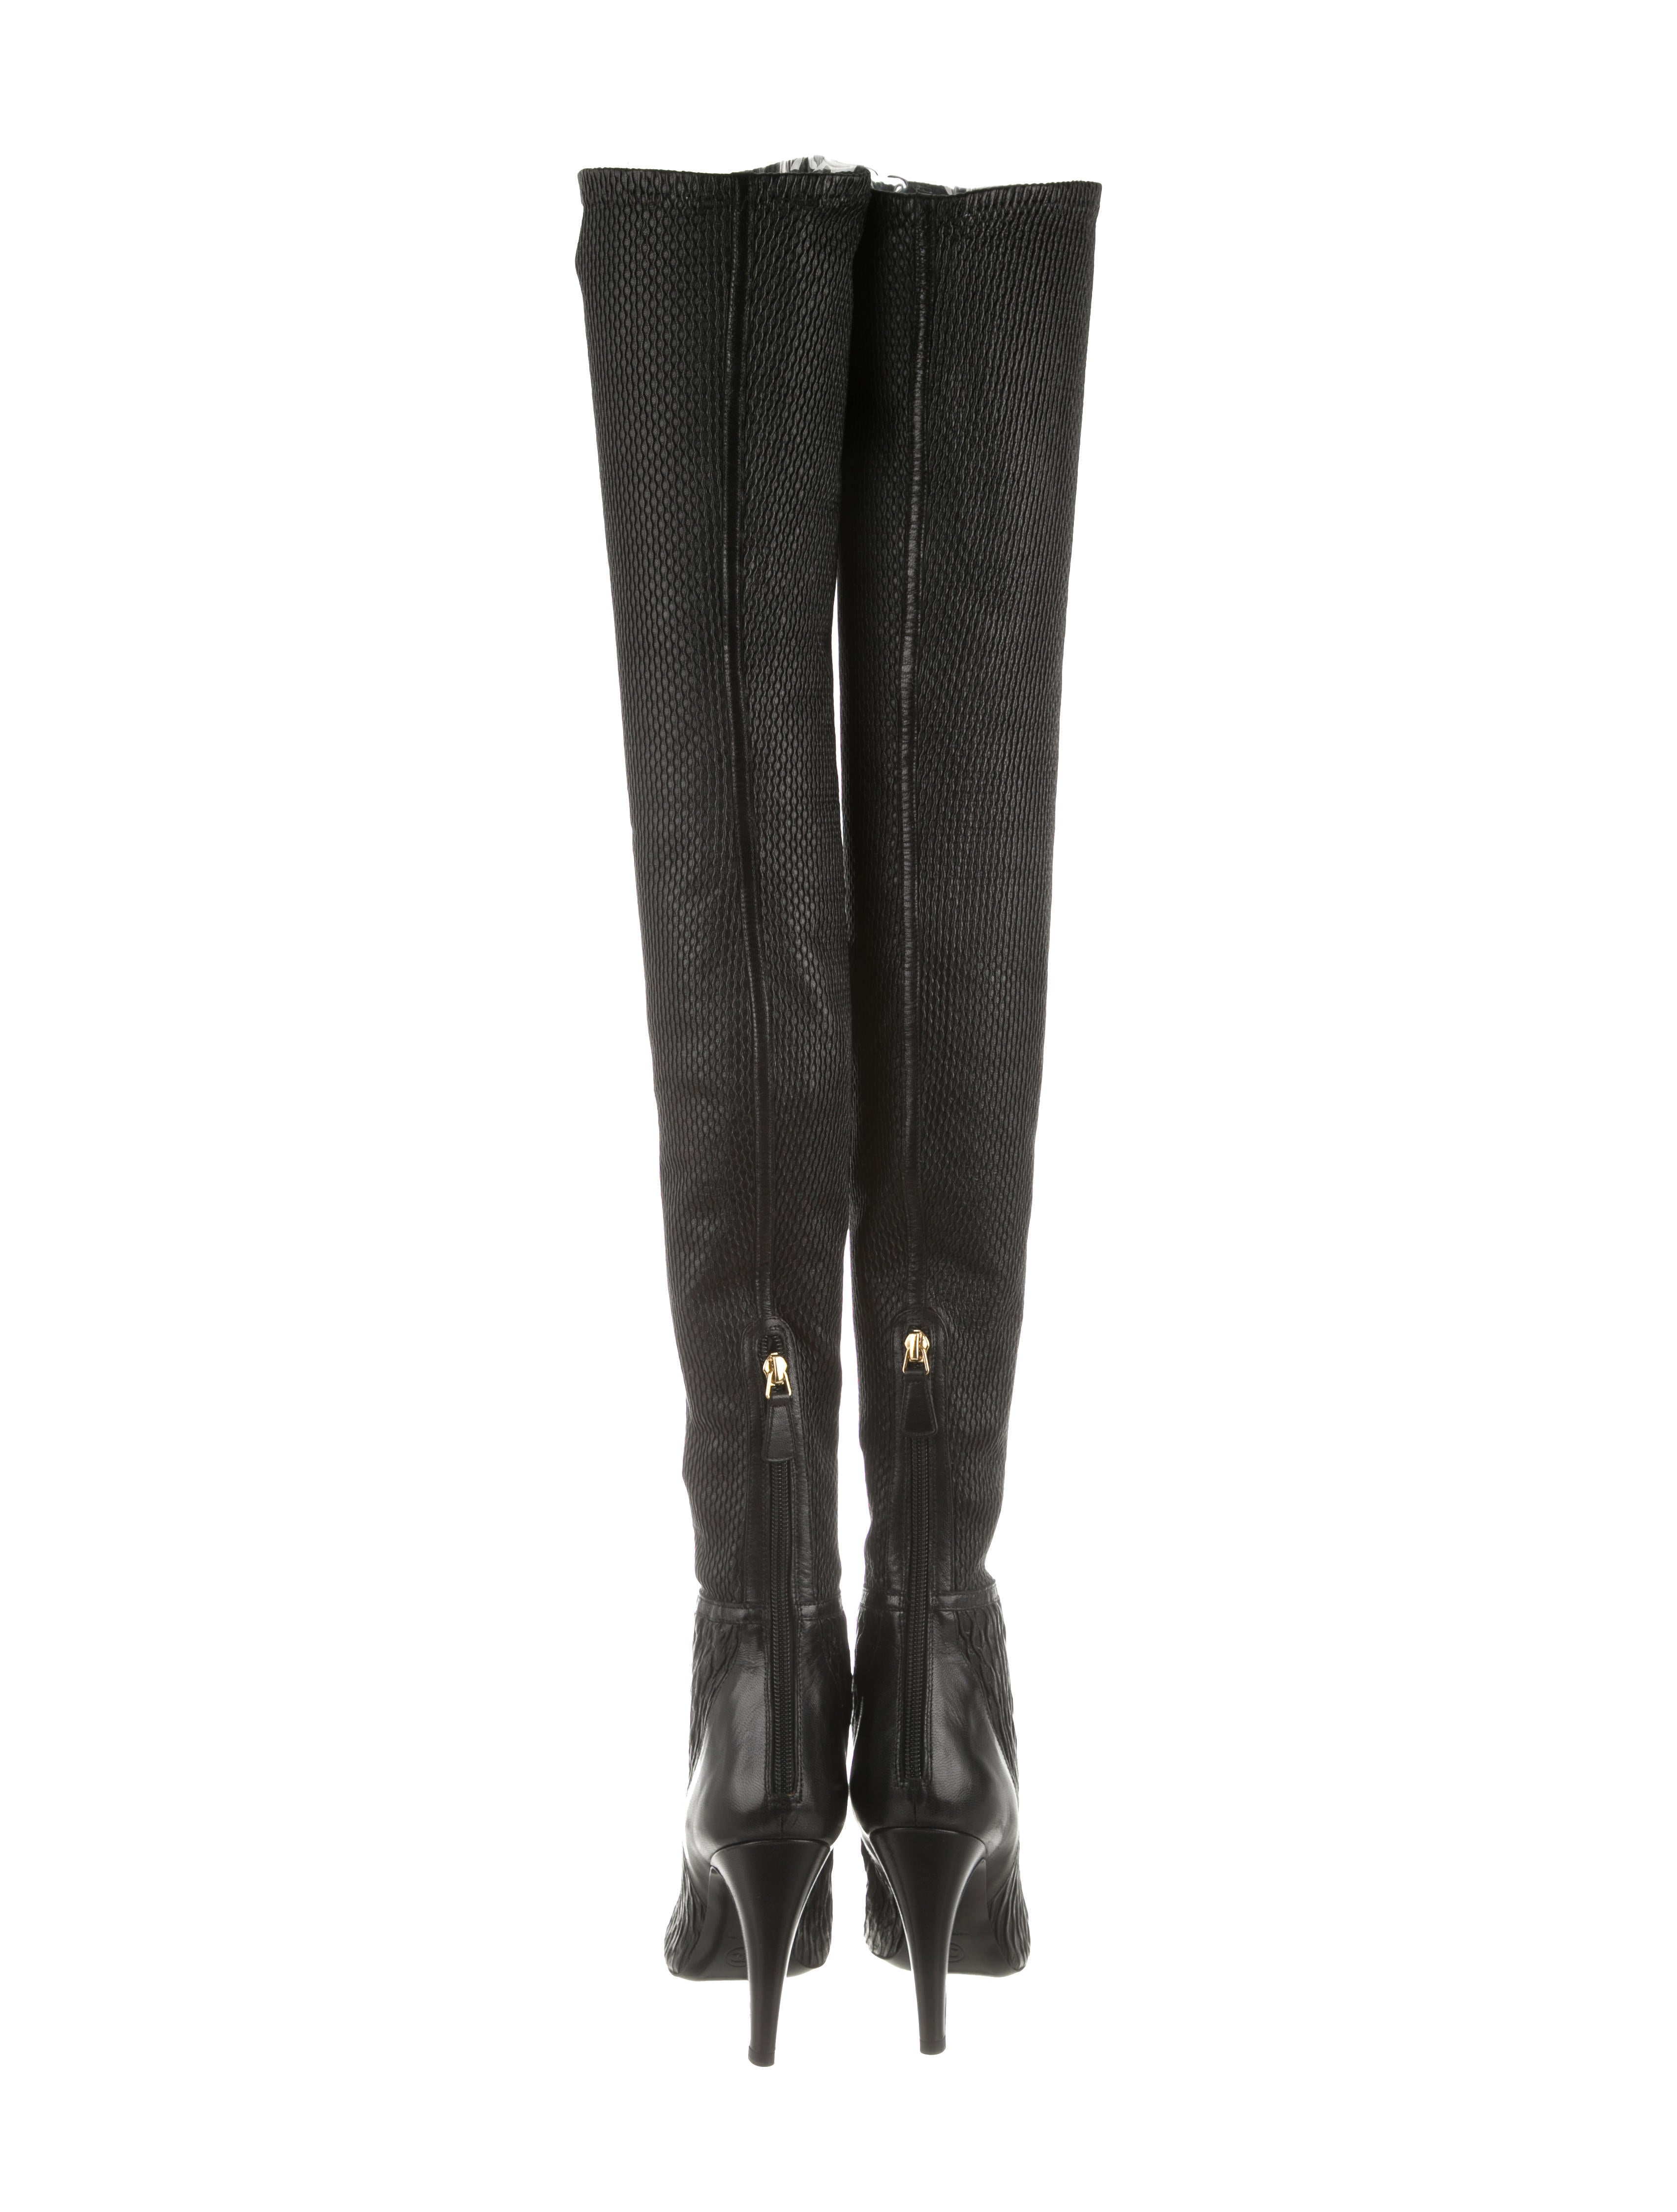 chanel leather thigh high boots shoes cha121298 the